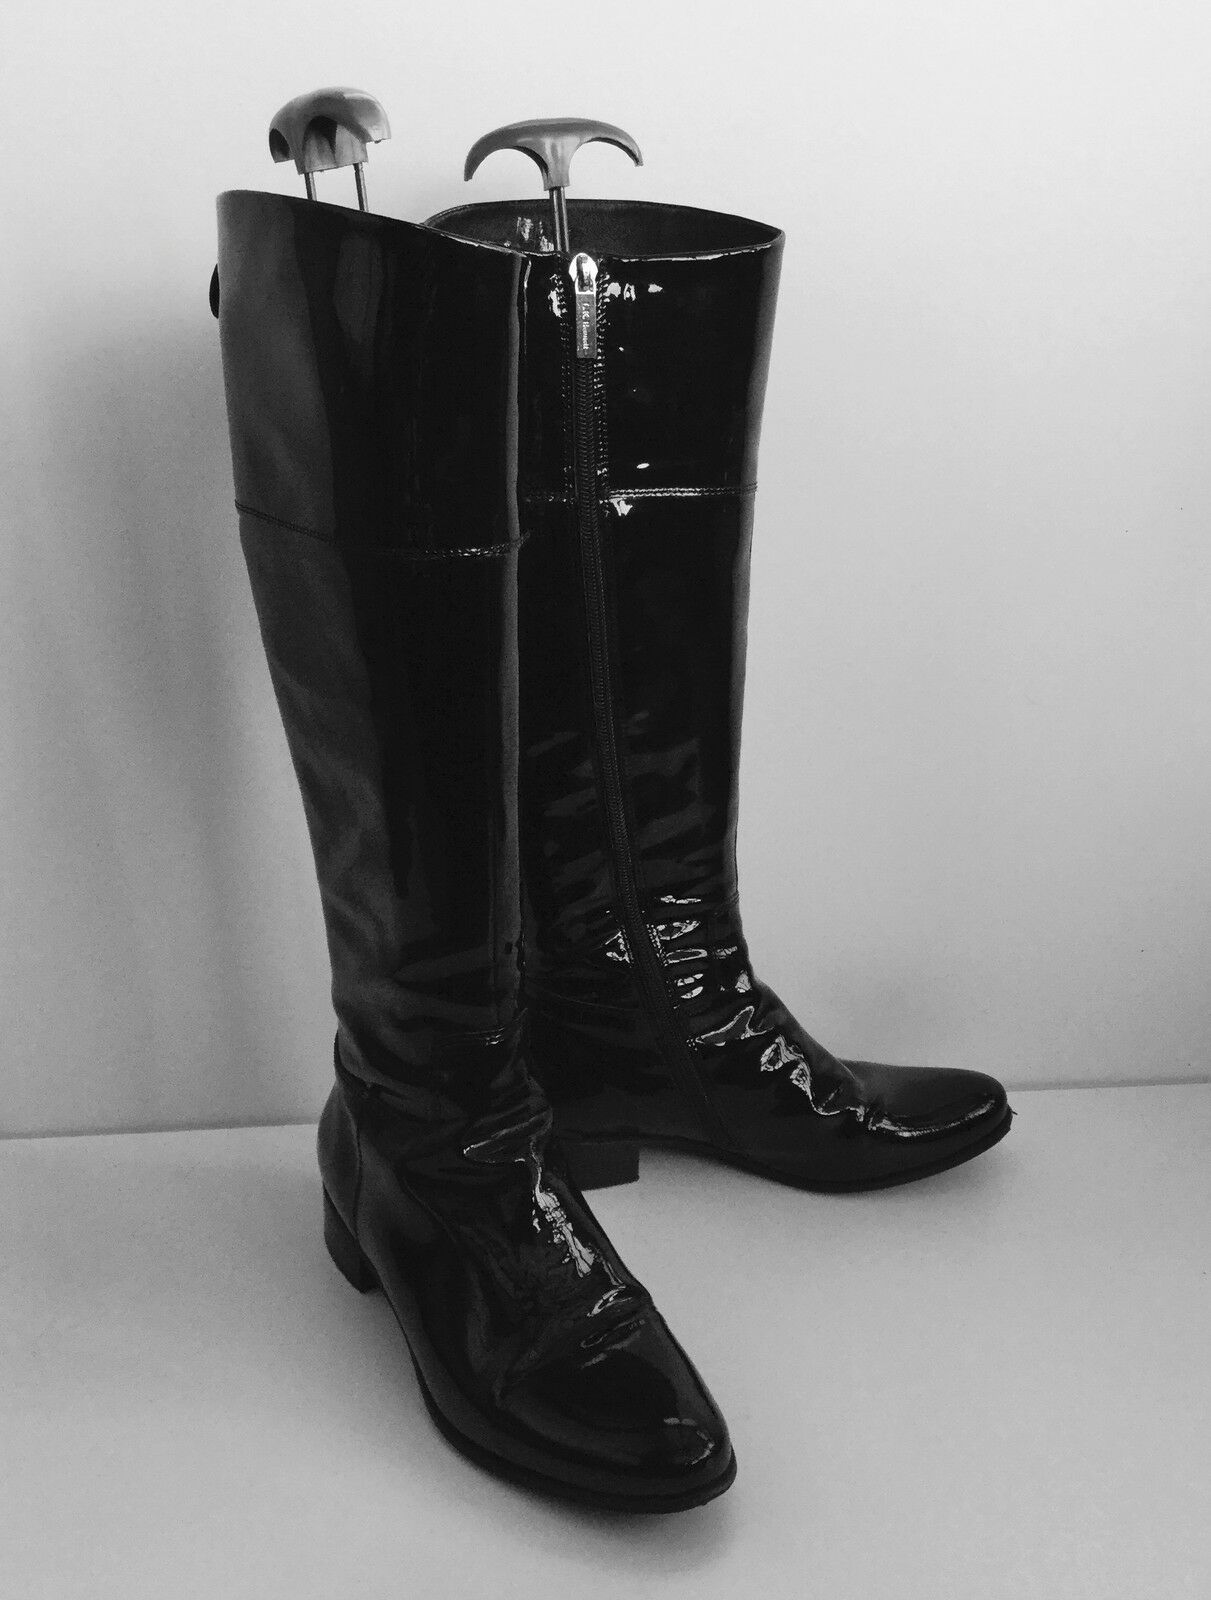 Grandes zapatos con descuento LK Bennett Darla Black Patent Knee Length Boots Size 4 (37) Immaculate Condition